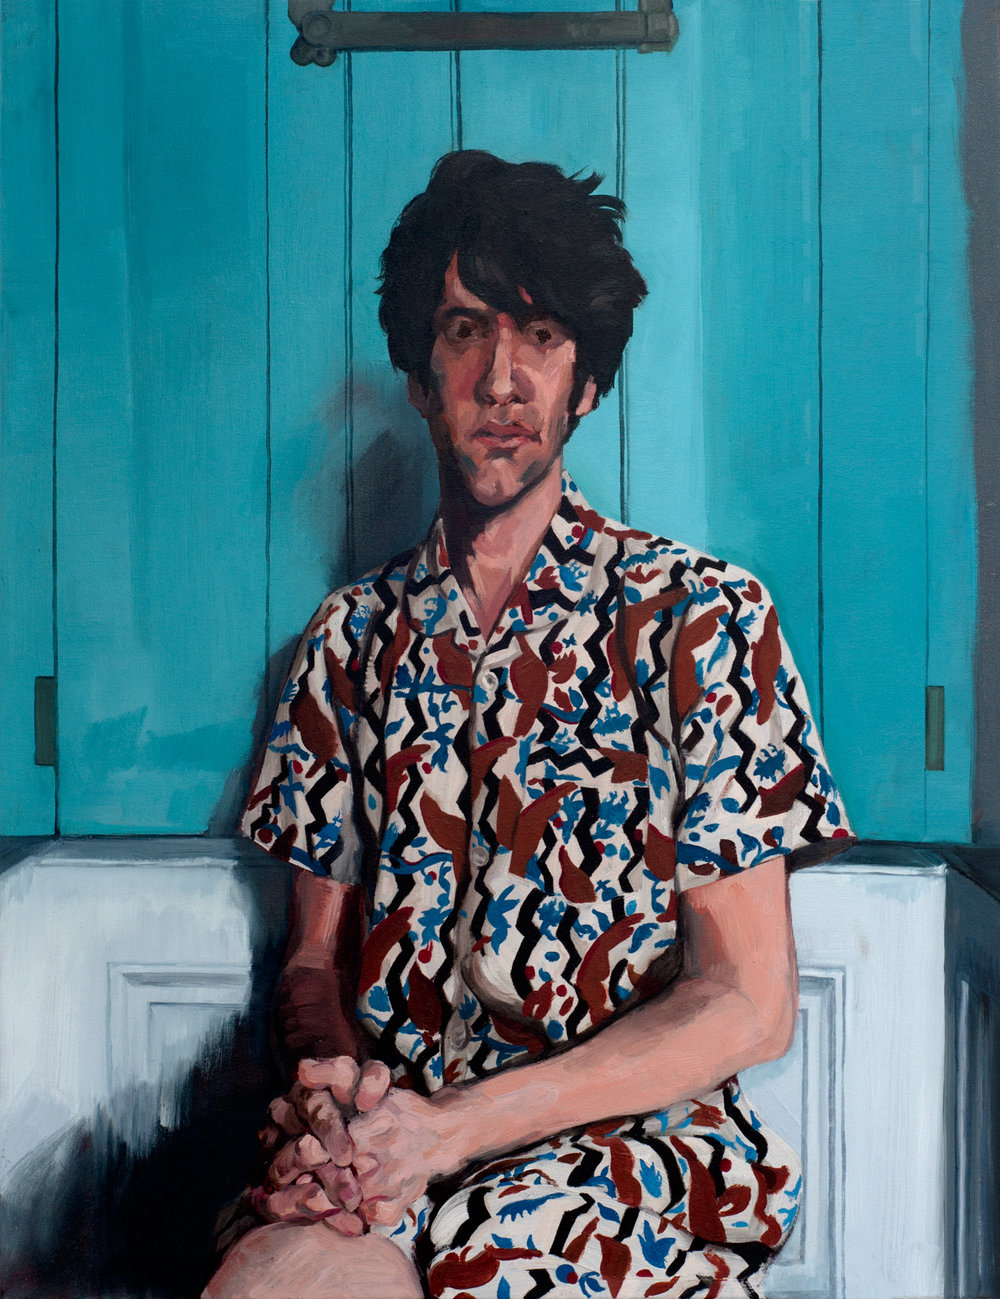 Ross McAuley, Self-portrait in pyjamas